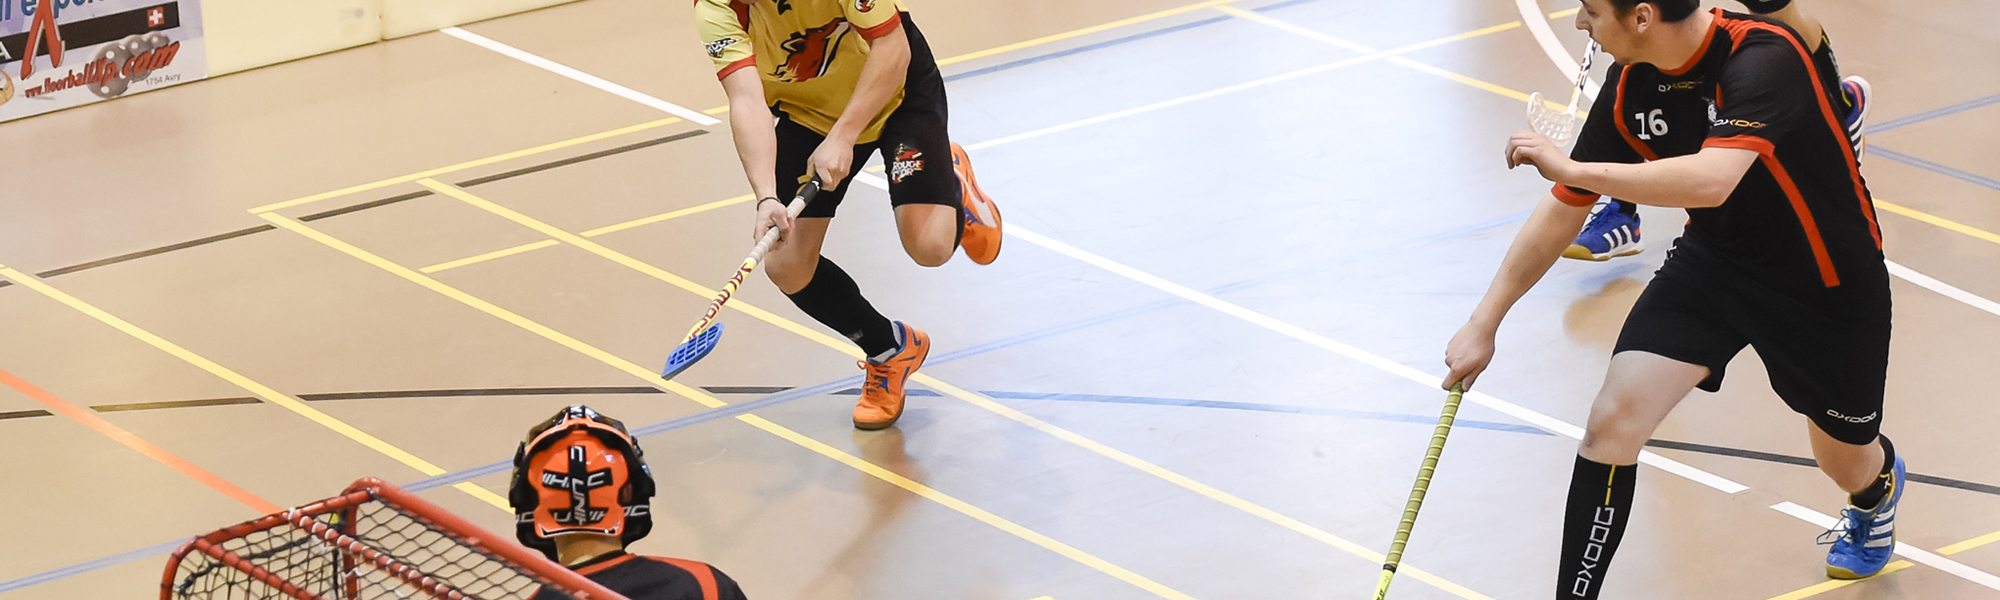 rouge et or, club de unihockey le locle